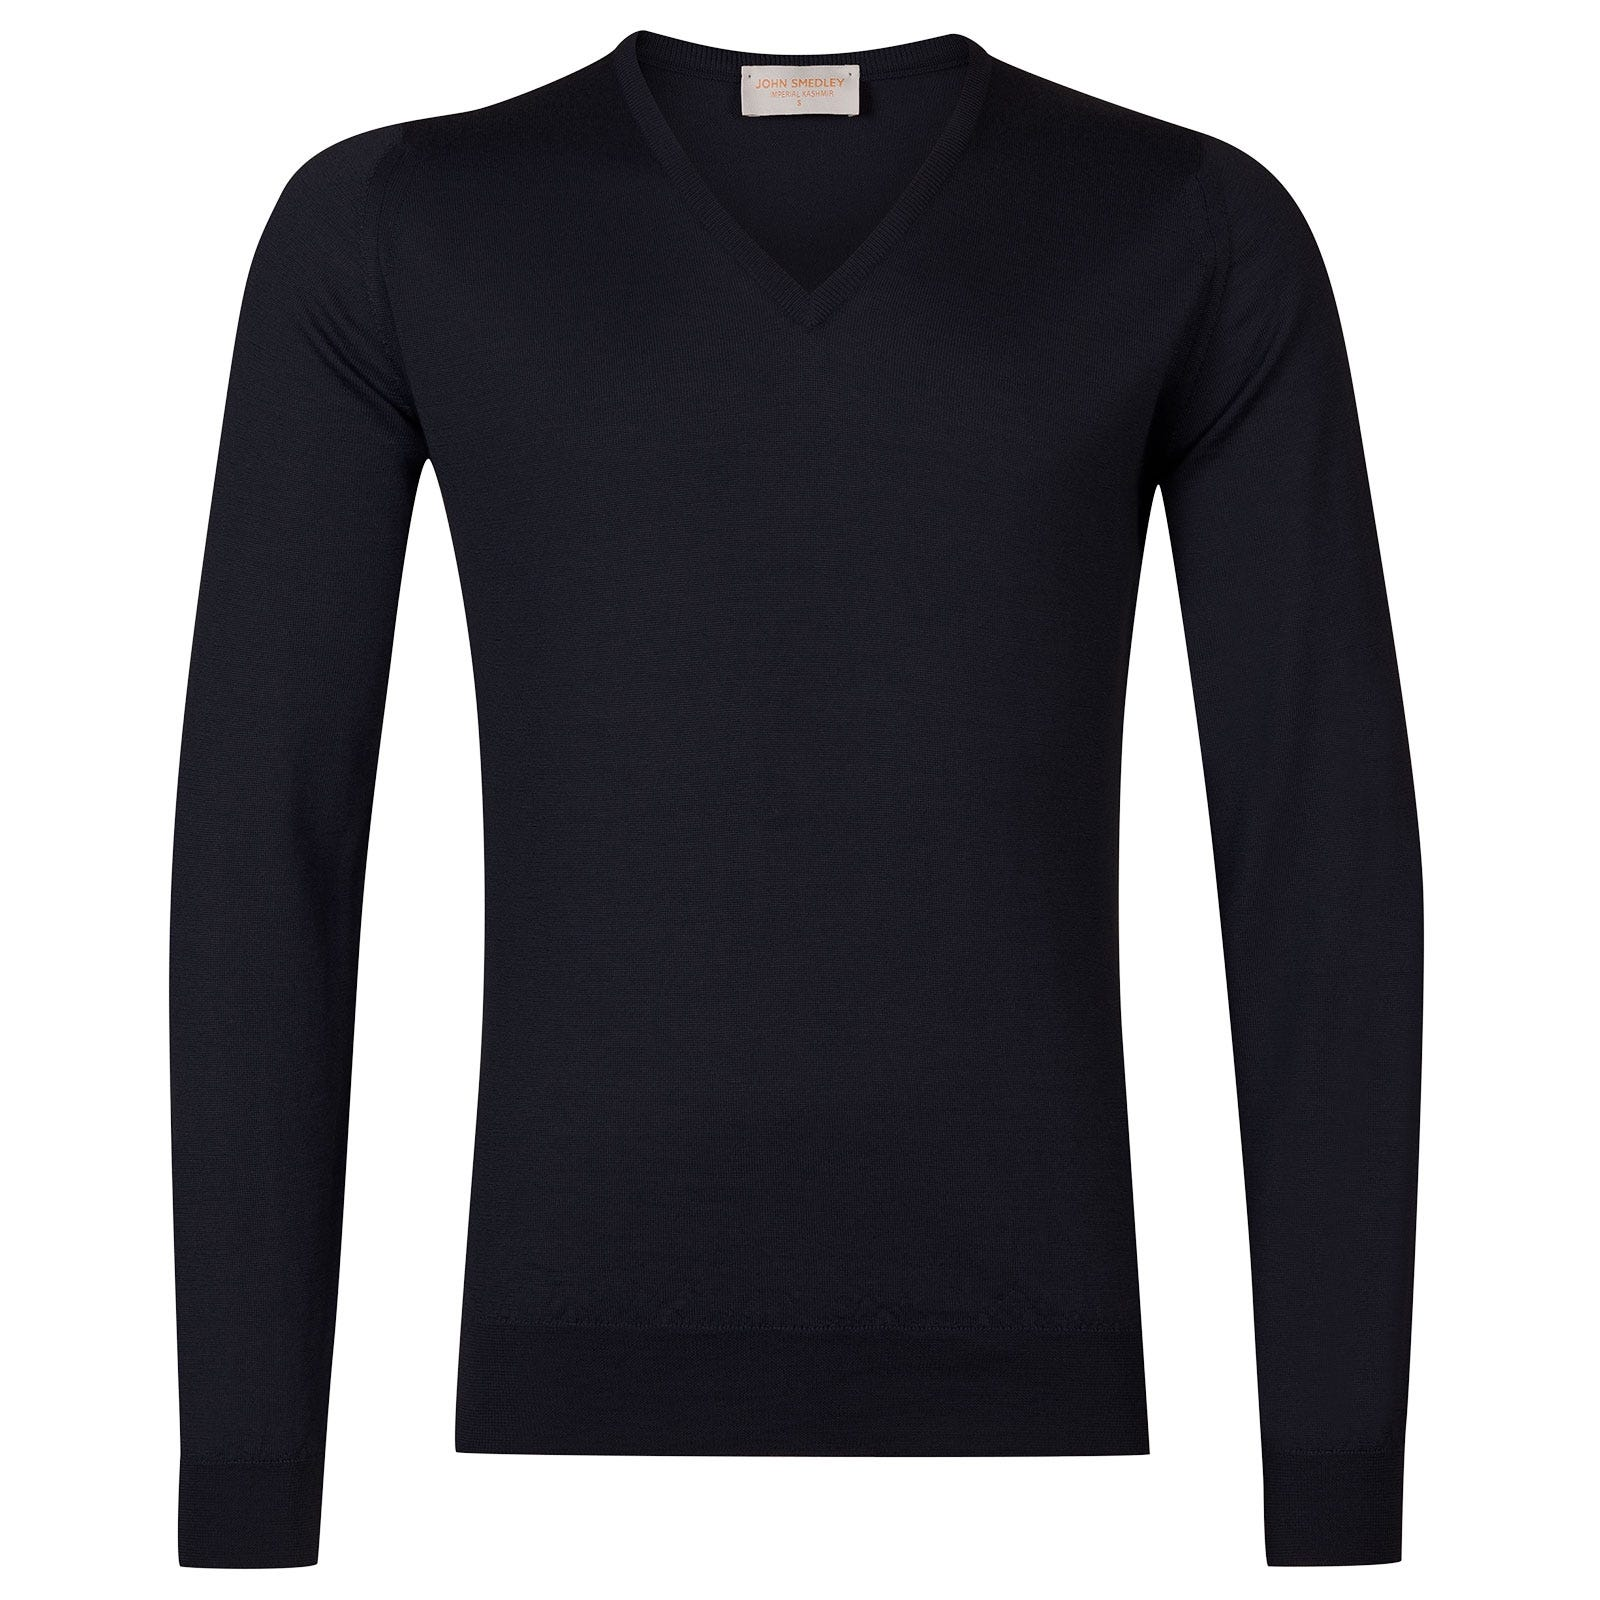 John Smedley Curlwell Cashmere and Silk Pullover in Navy-XL